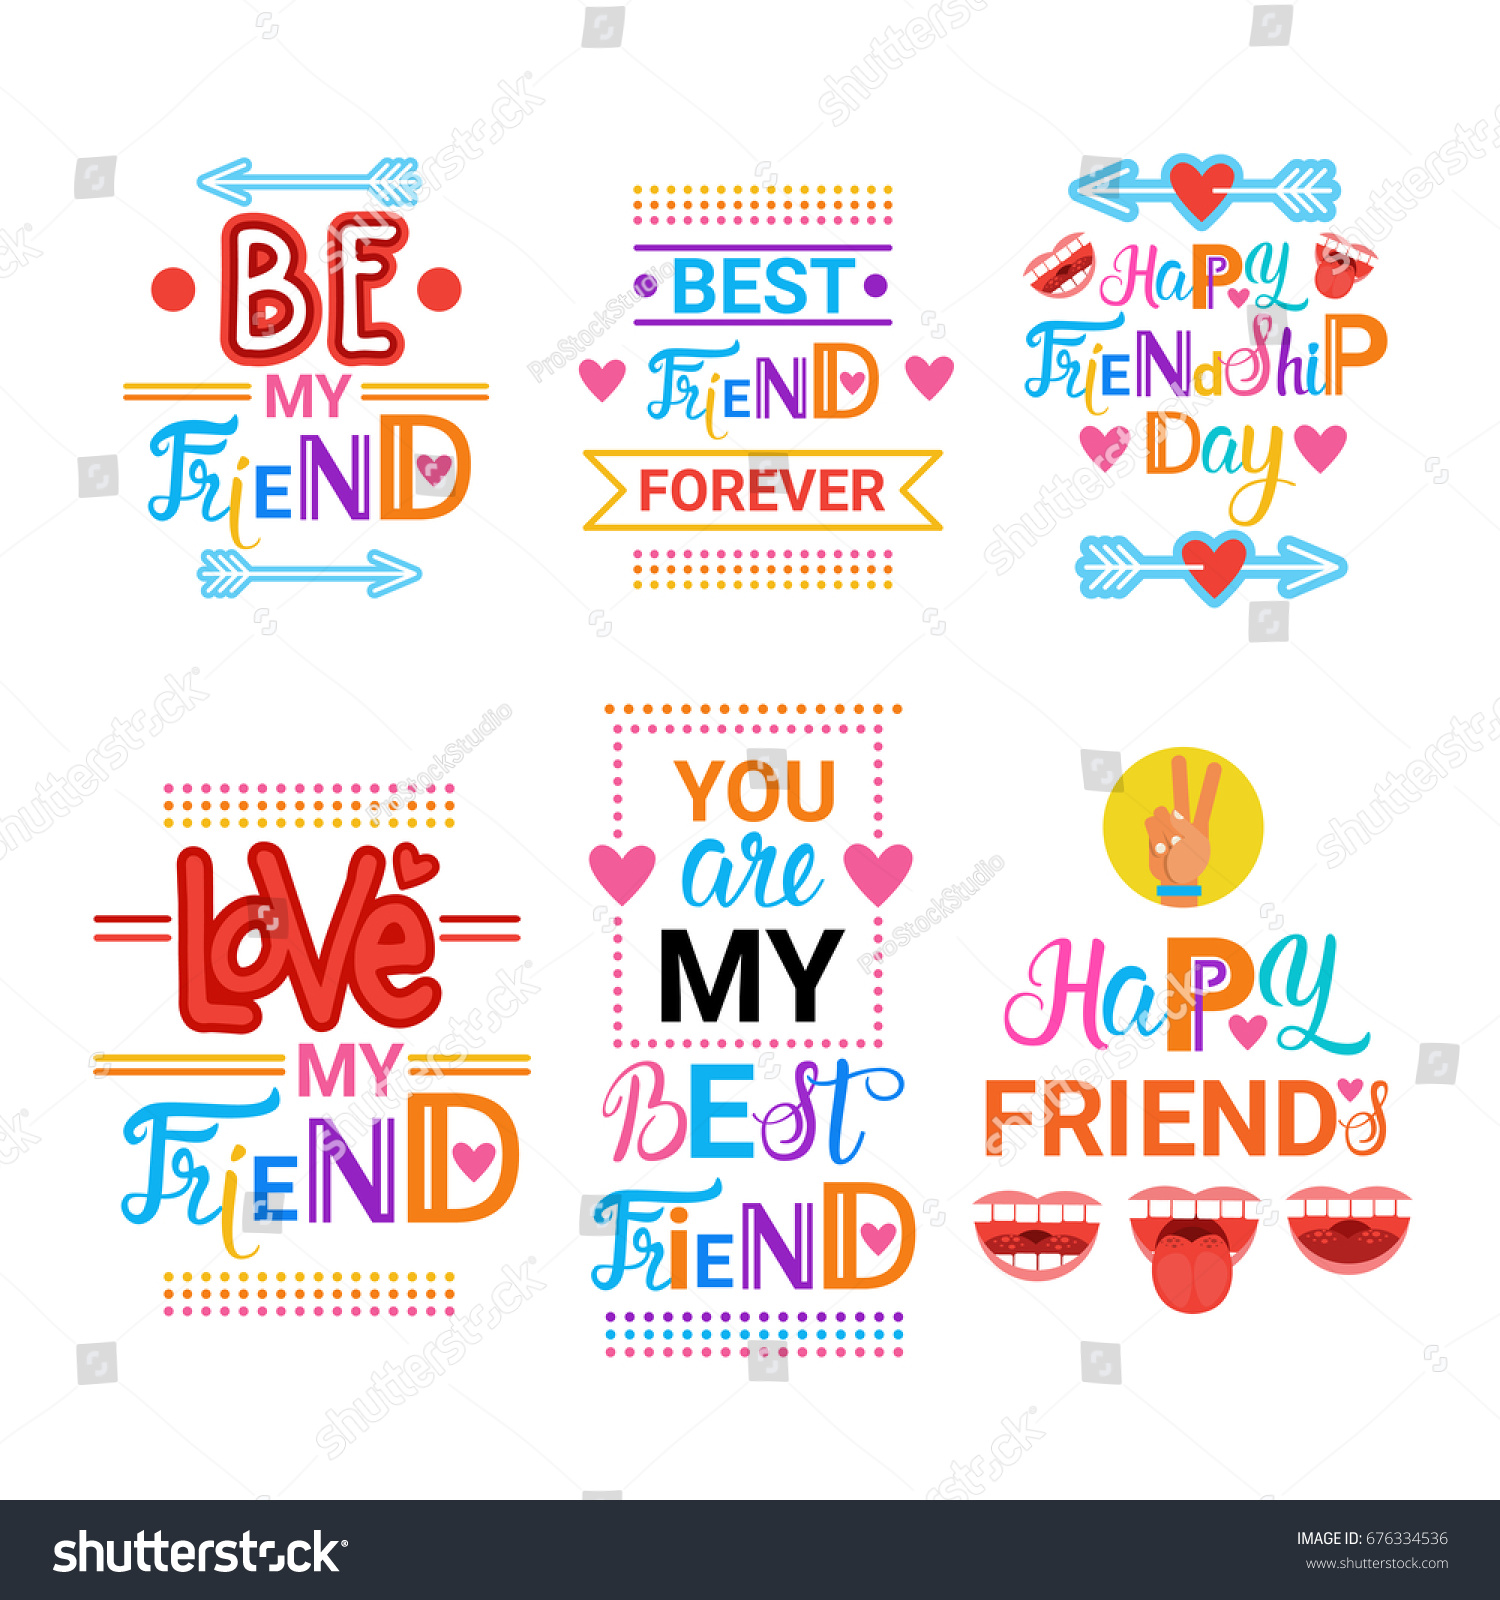 Happy Friendship Day Greeting Cards Set Stock Vector 676334536